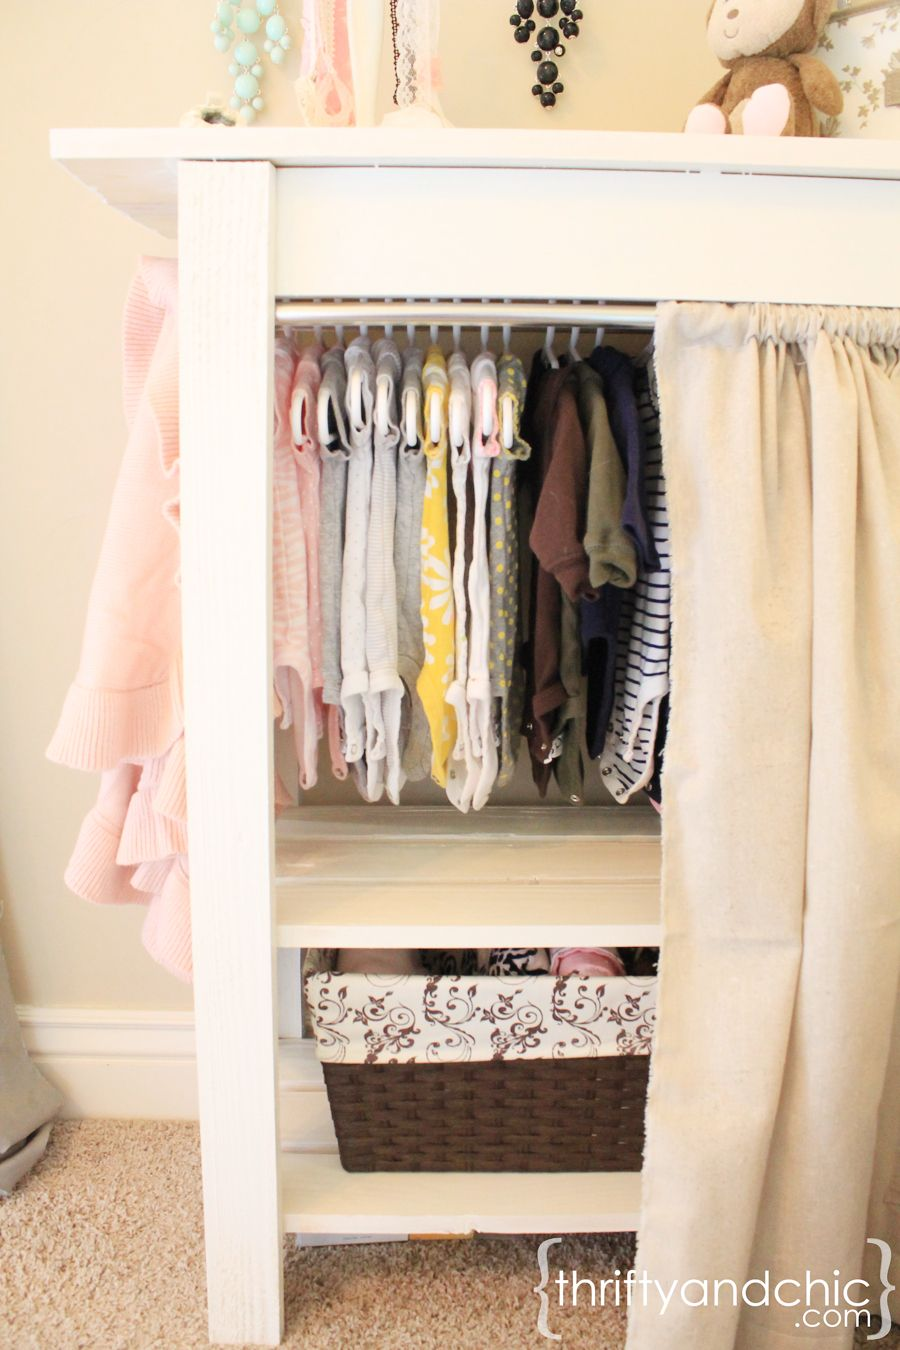 Delicieux Moveable Baby Closet...could Also Use As Dress Up Closet For Kida